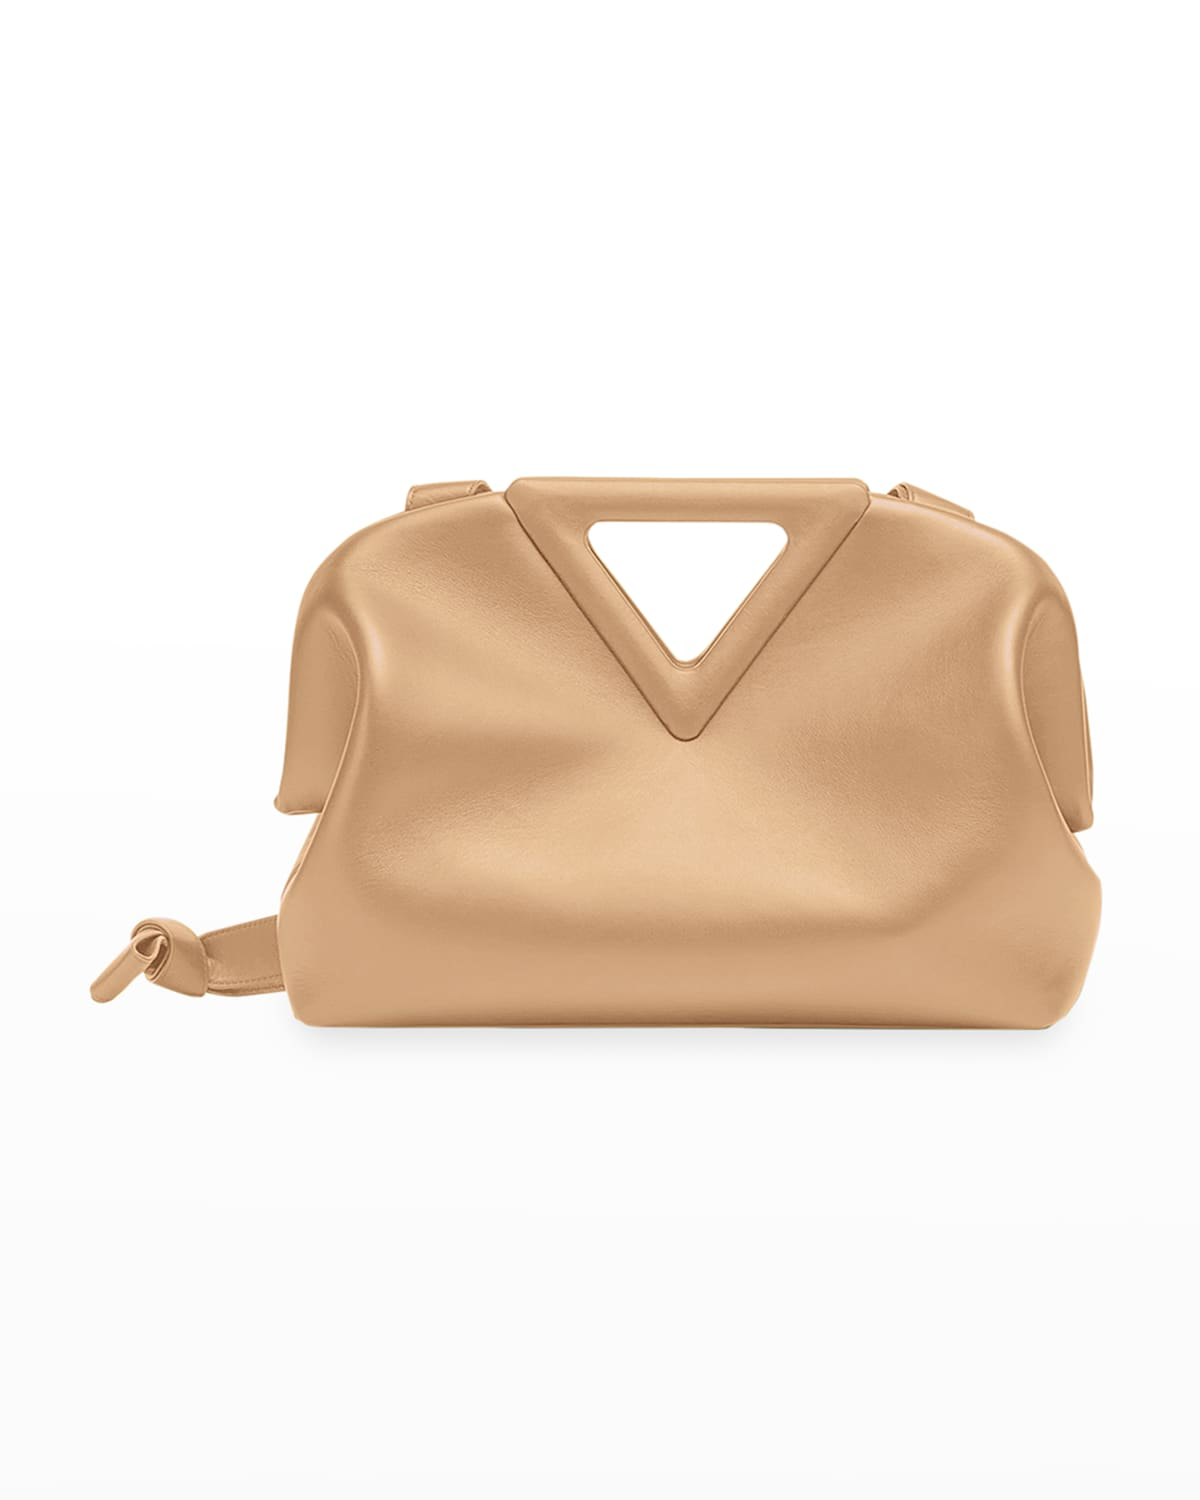 The Point Triangle Bag